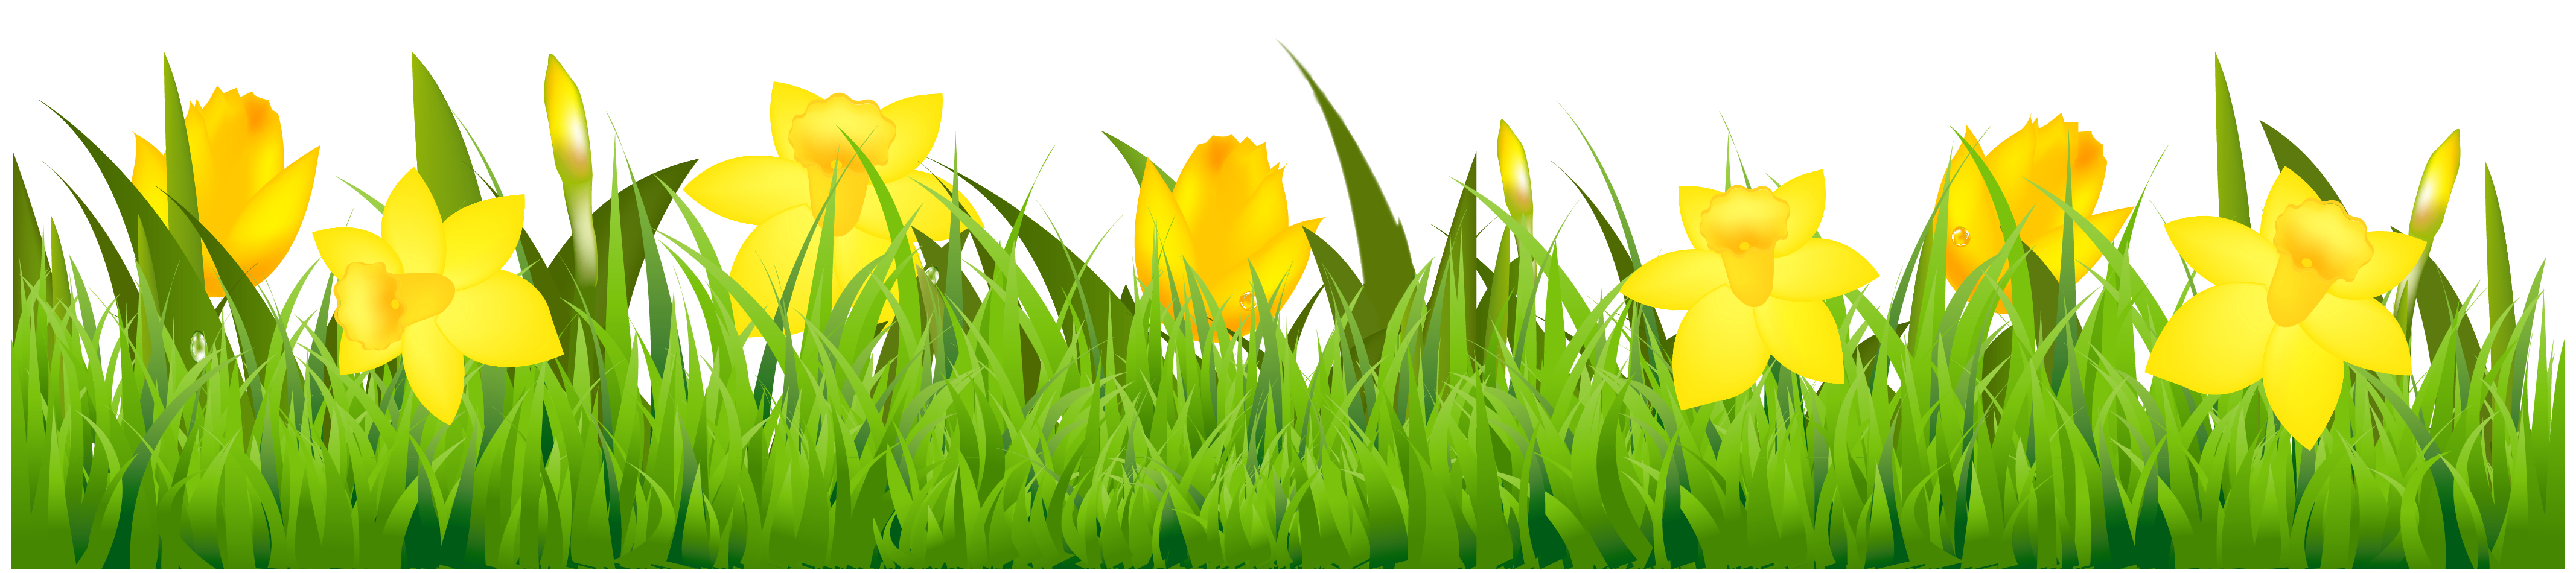 Clipart borders daffodil. Grass with daffodils png